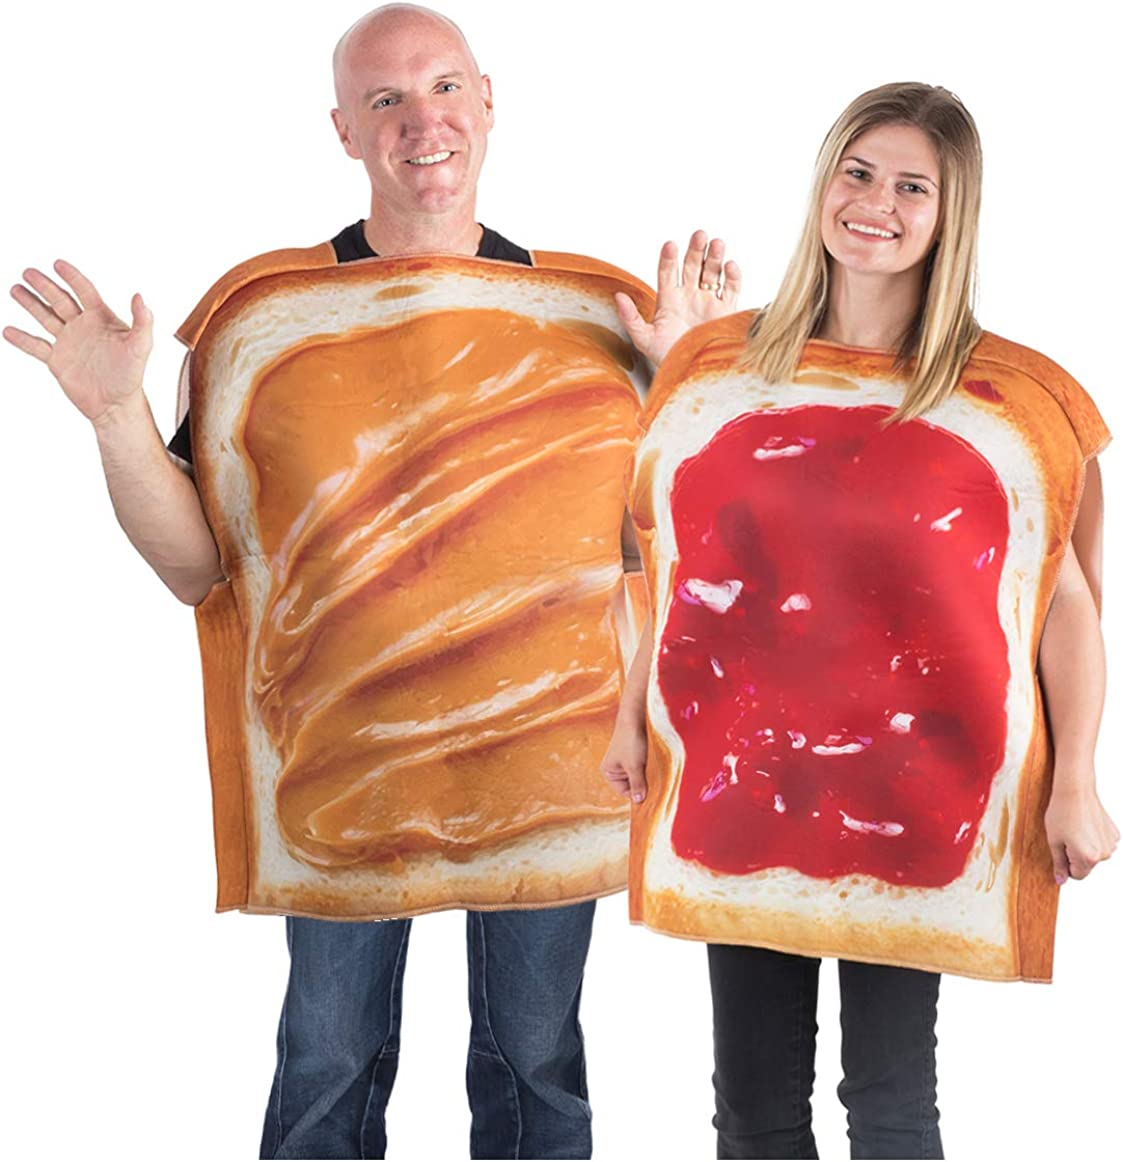 Tigerdoe Peanut Butter & Jelly Costume Set - Couples Costumes - Food Costumes - Costumes for Adults - 2 Pk